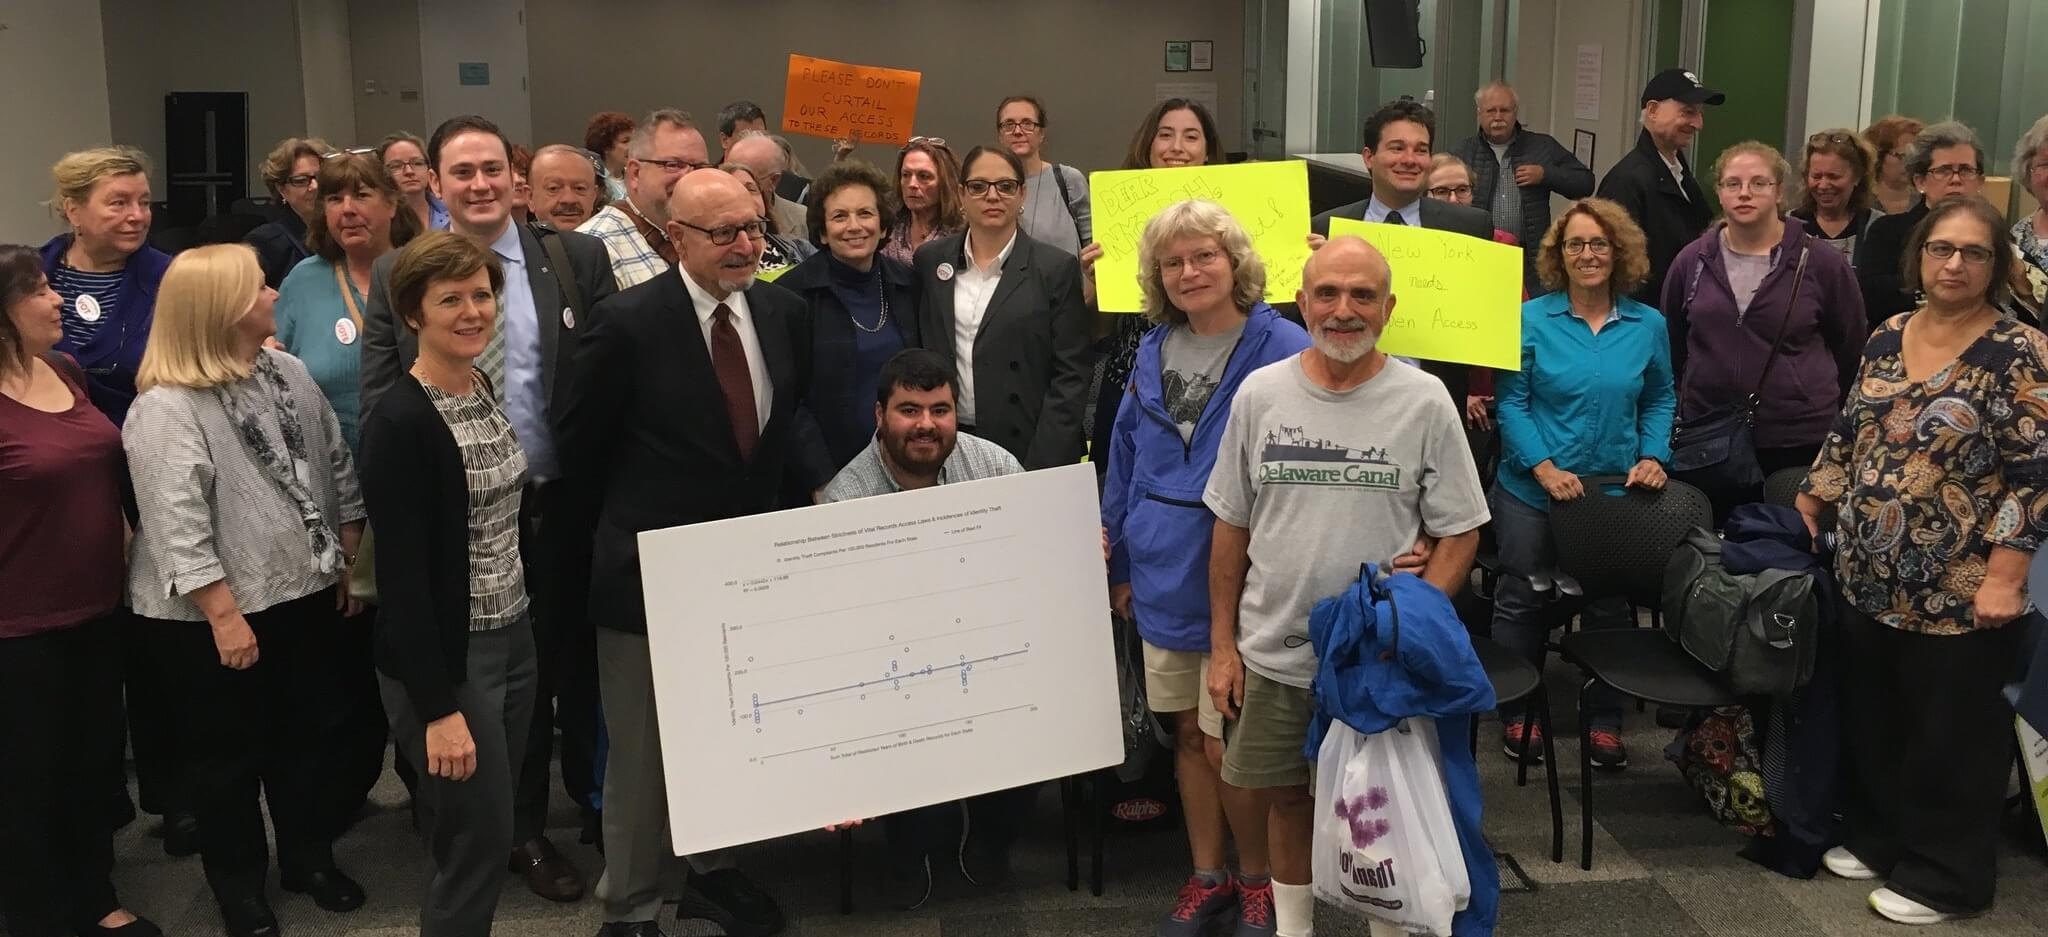 Group Photo at NYC DOH public comments hearing, October 2017